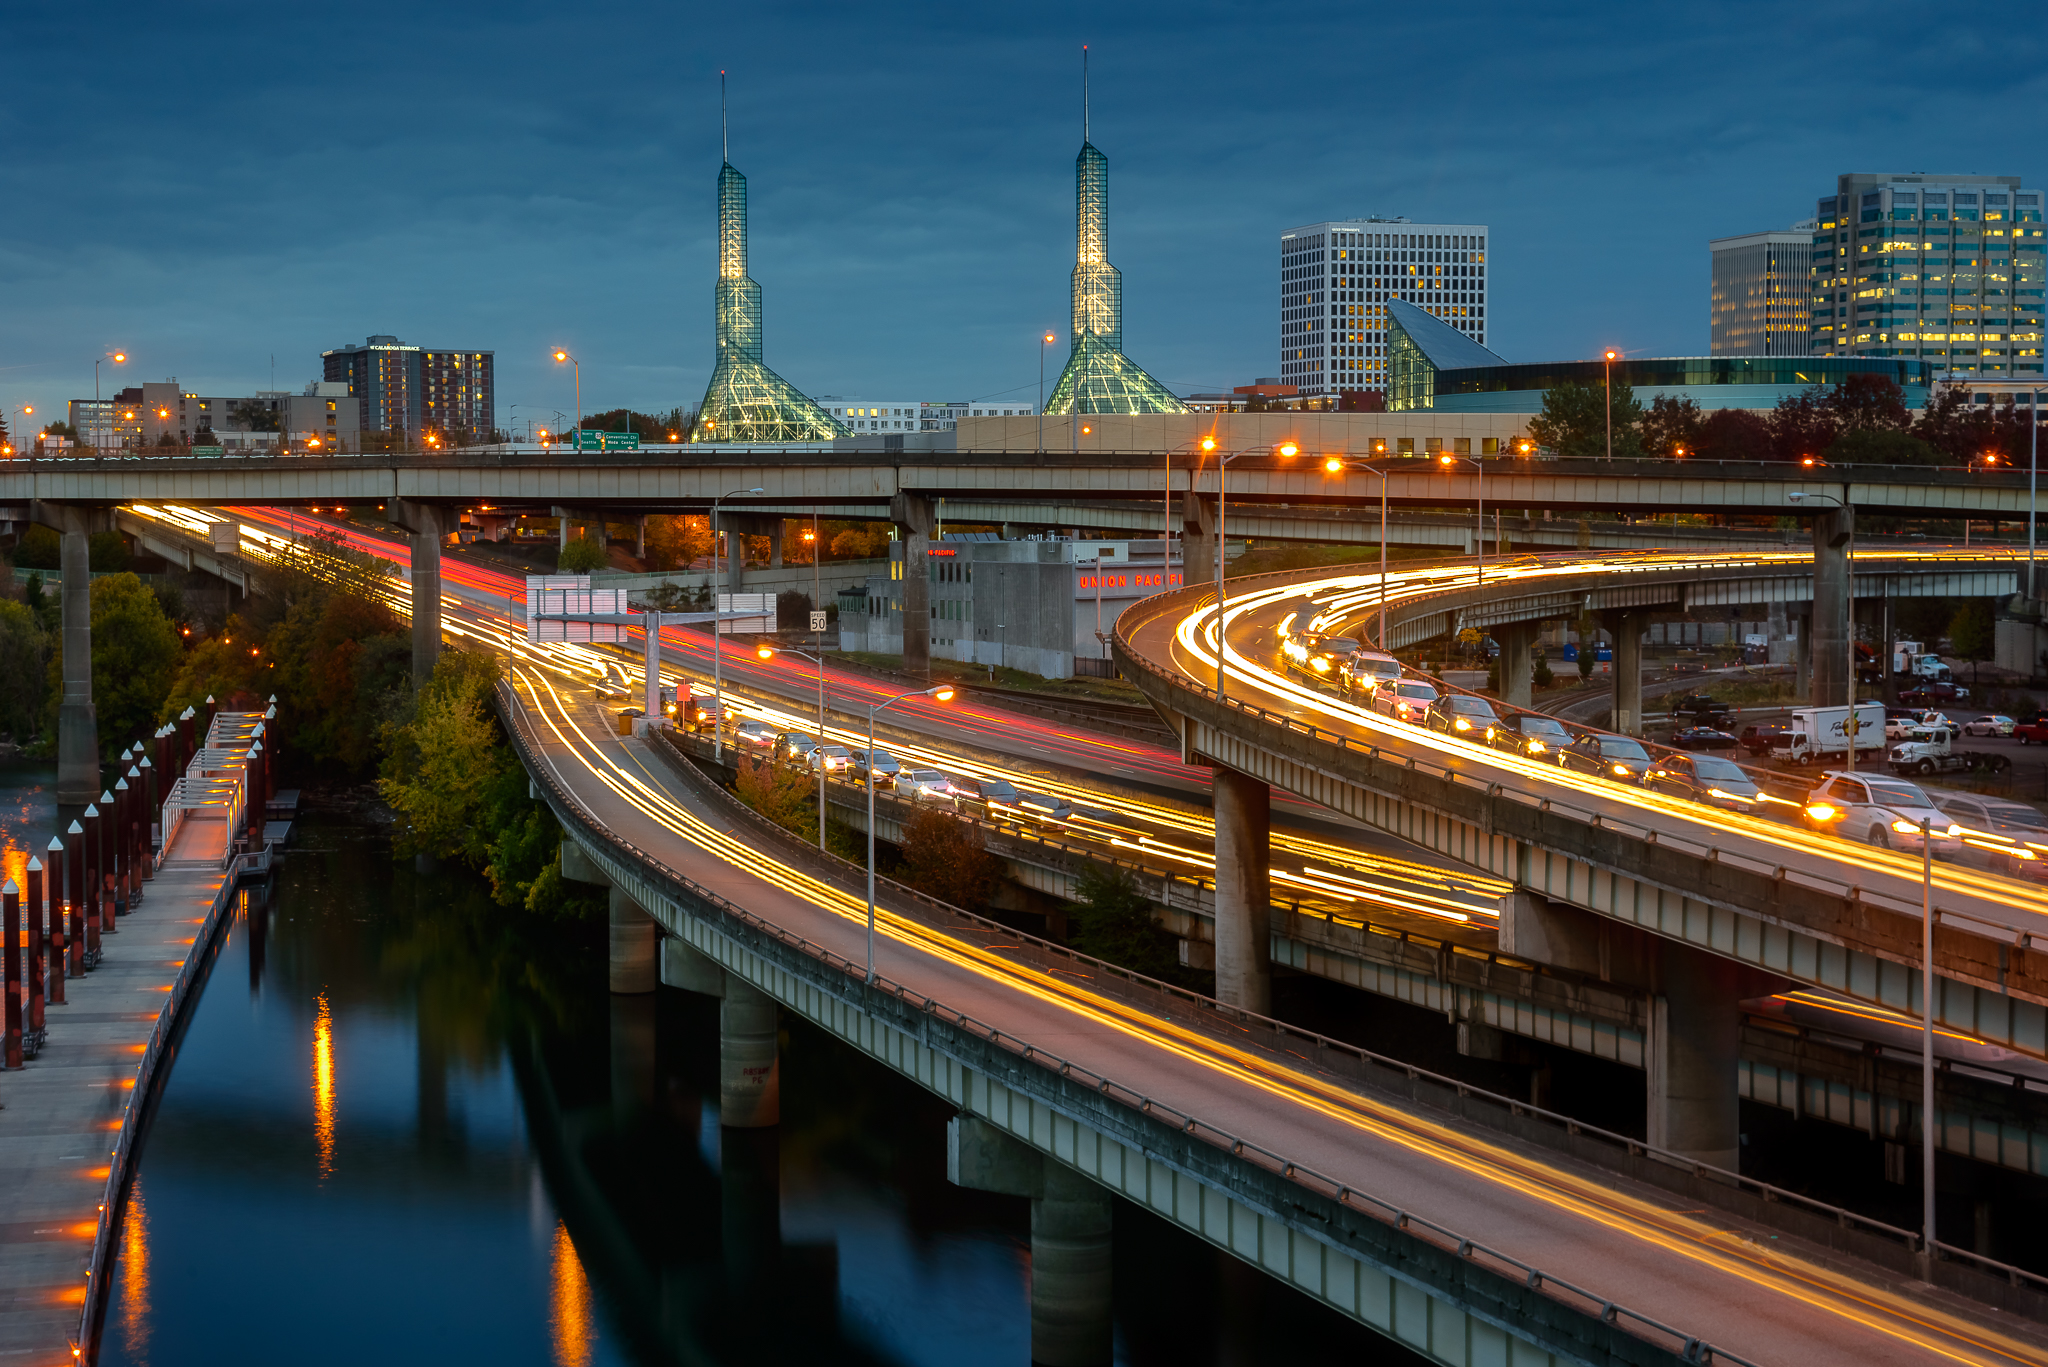 The reason public transportation thrives. Rush hour viewed from the Burnside Bridge. Central Portland.